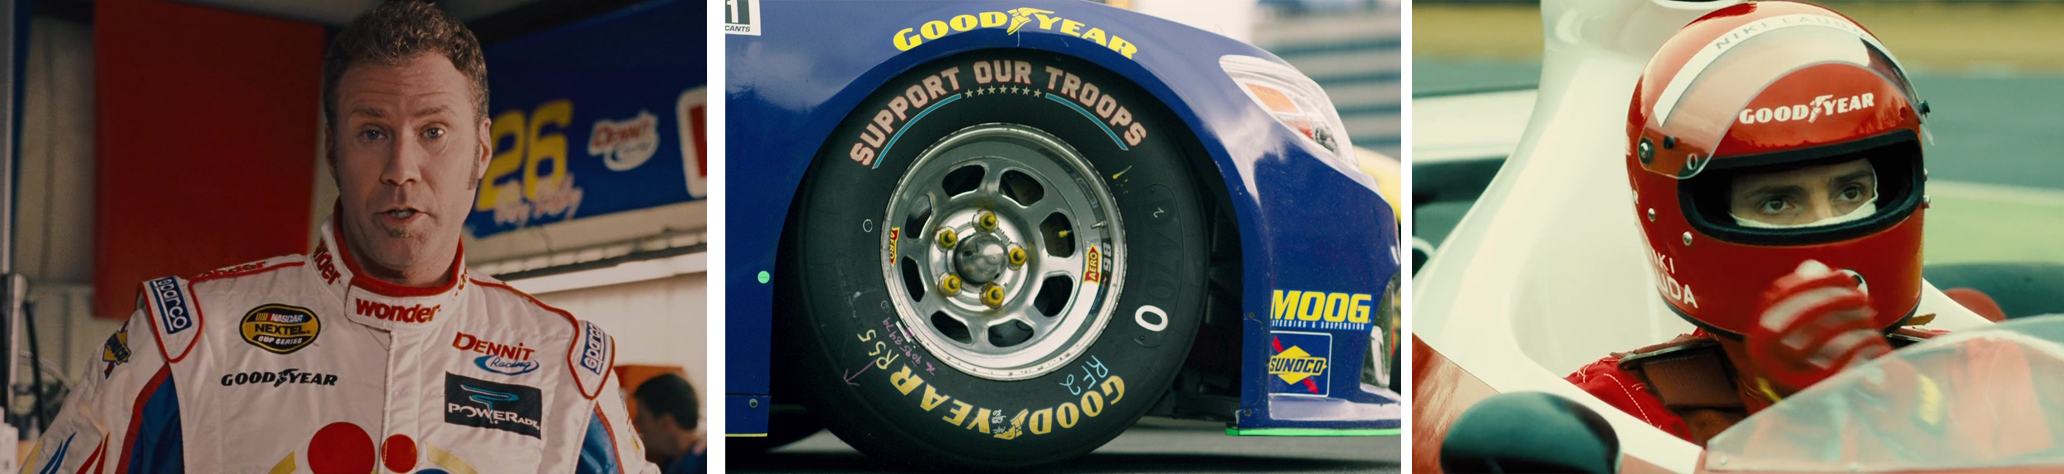 Goodyear, Concave brand tracking, product placement, brands, movies, entertainment marketing, branded integration, integration marketing, analysis, valuation, metrics, measurement, talladega nights, ricky bobby, rush, logan lucky